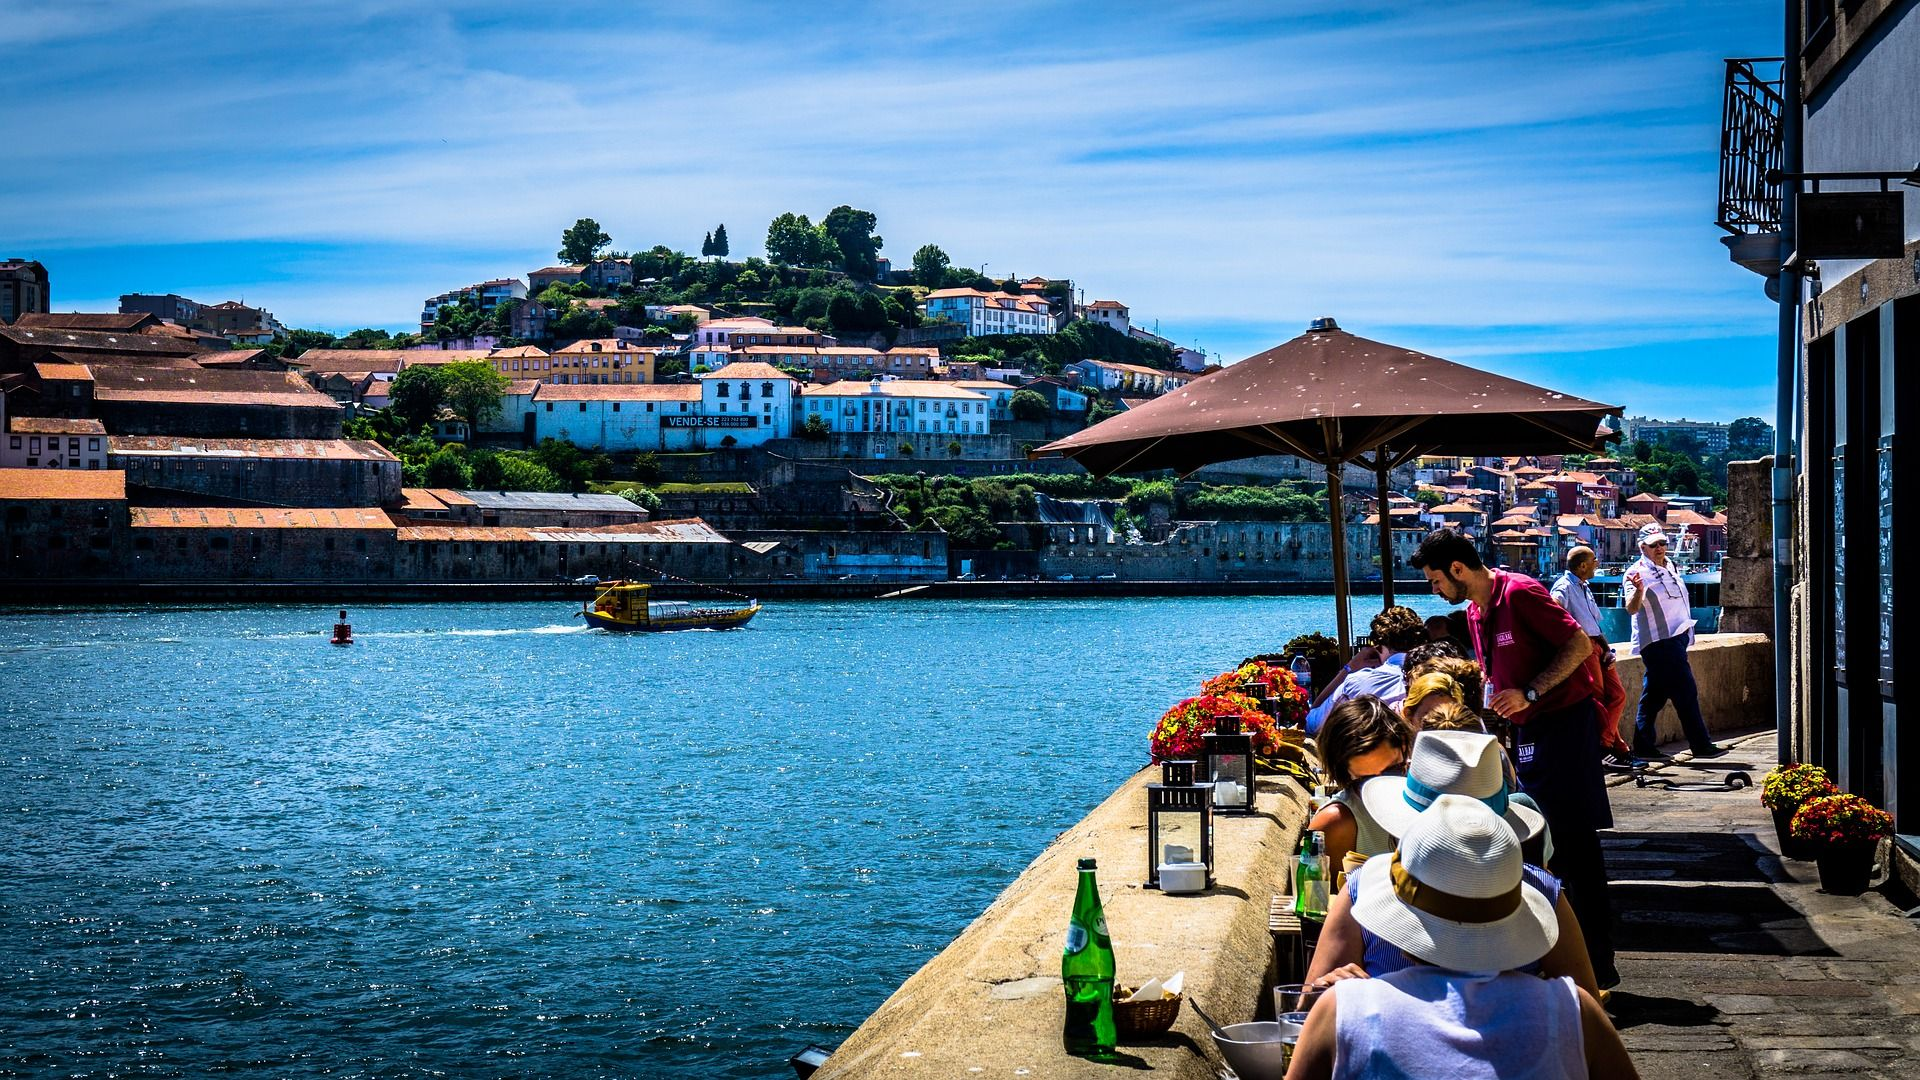 View of the riverside area of the city with a rabelo boat, used for centuries to transport supplies and port wine along the Douro River.